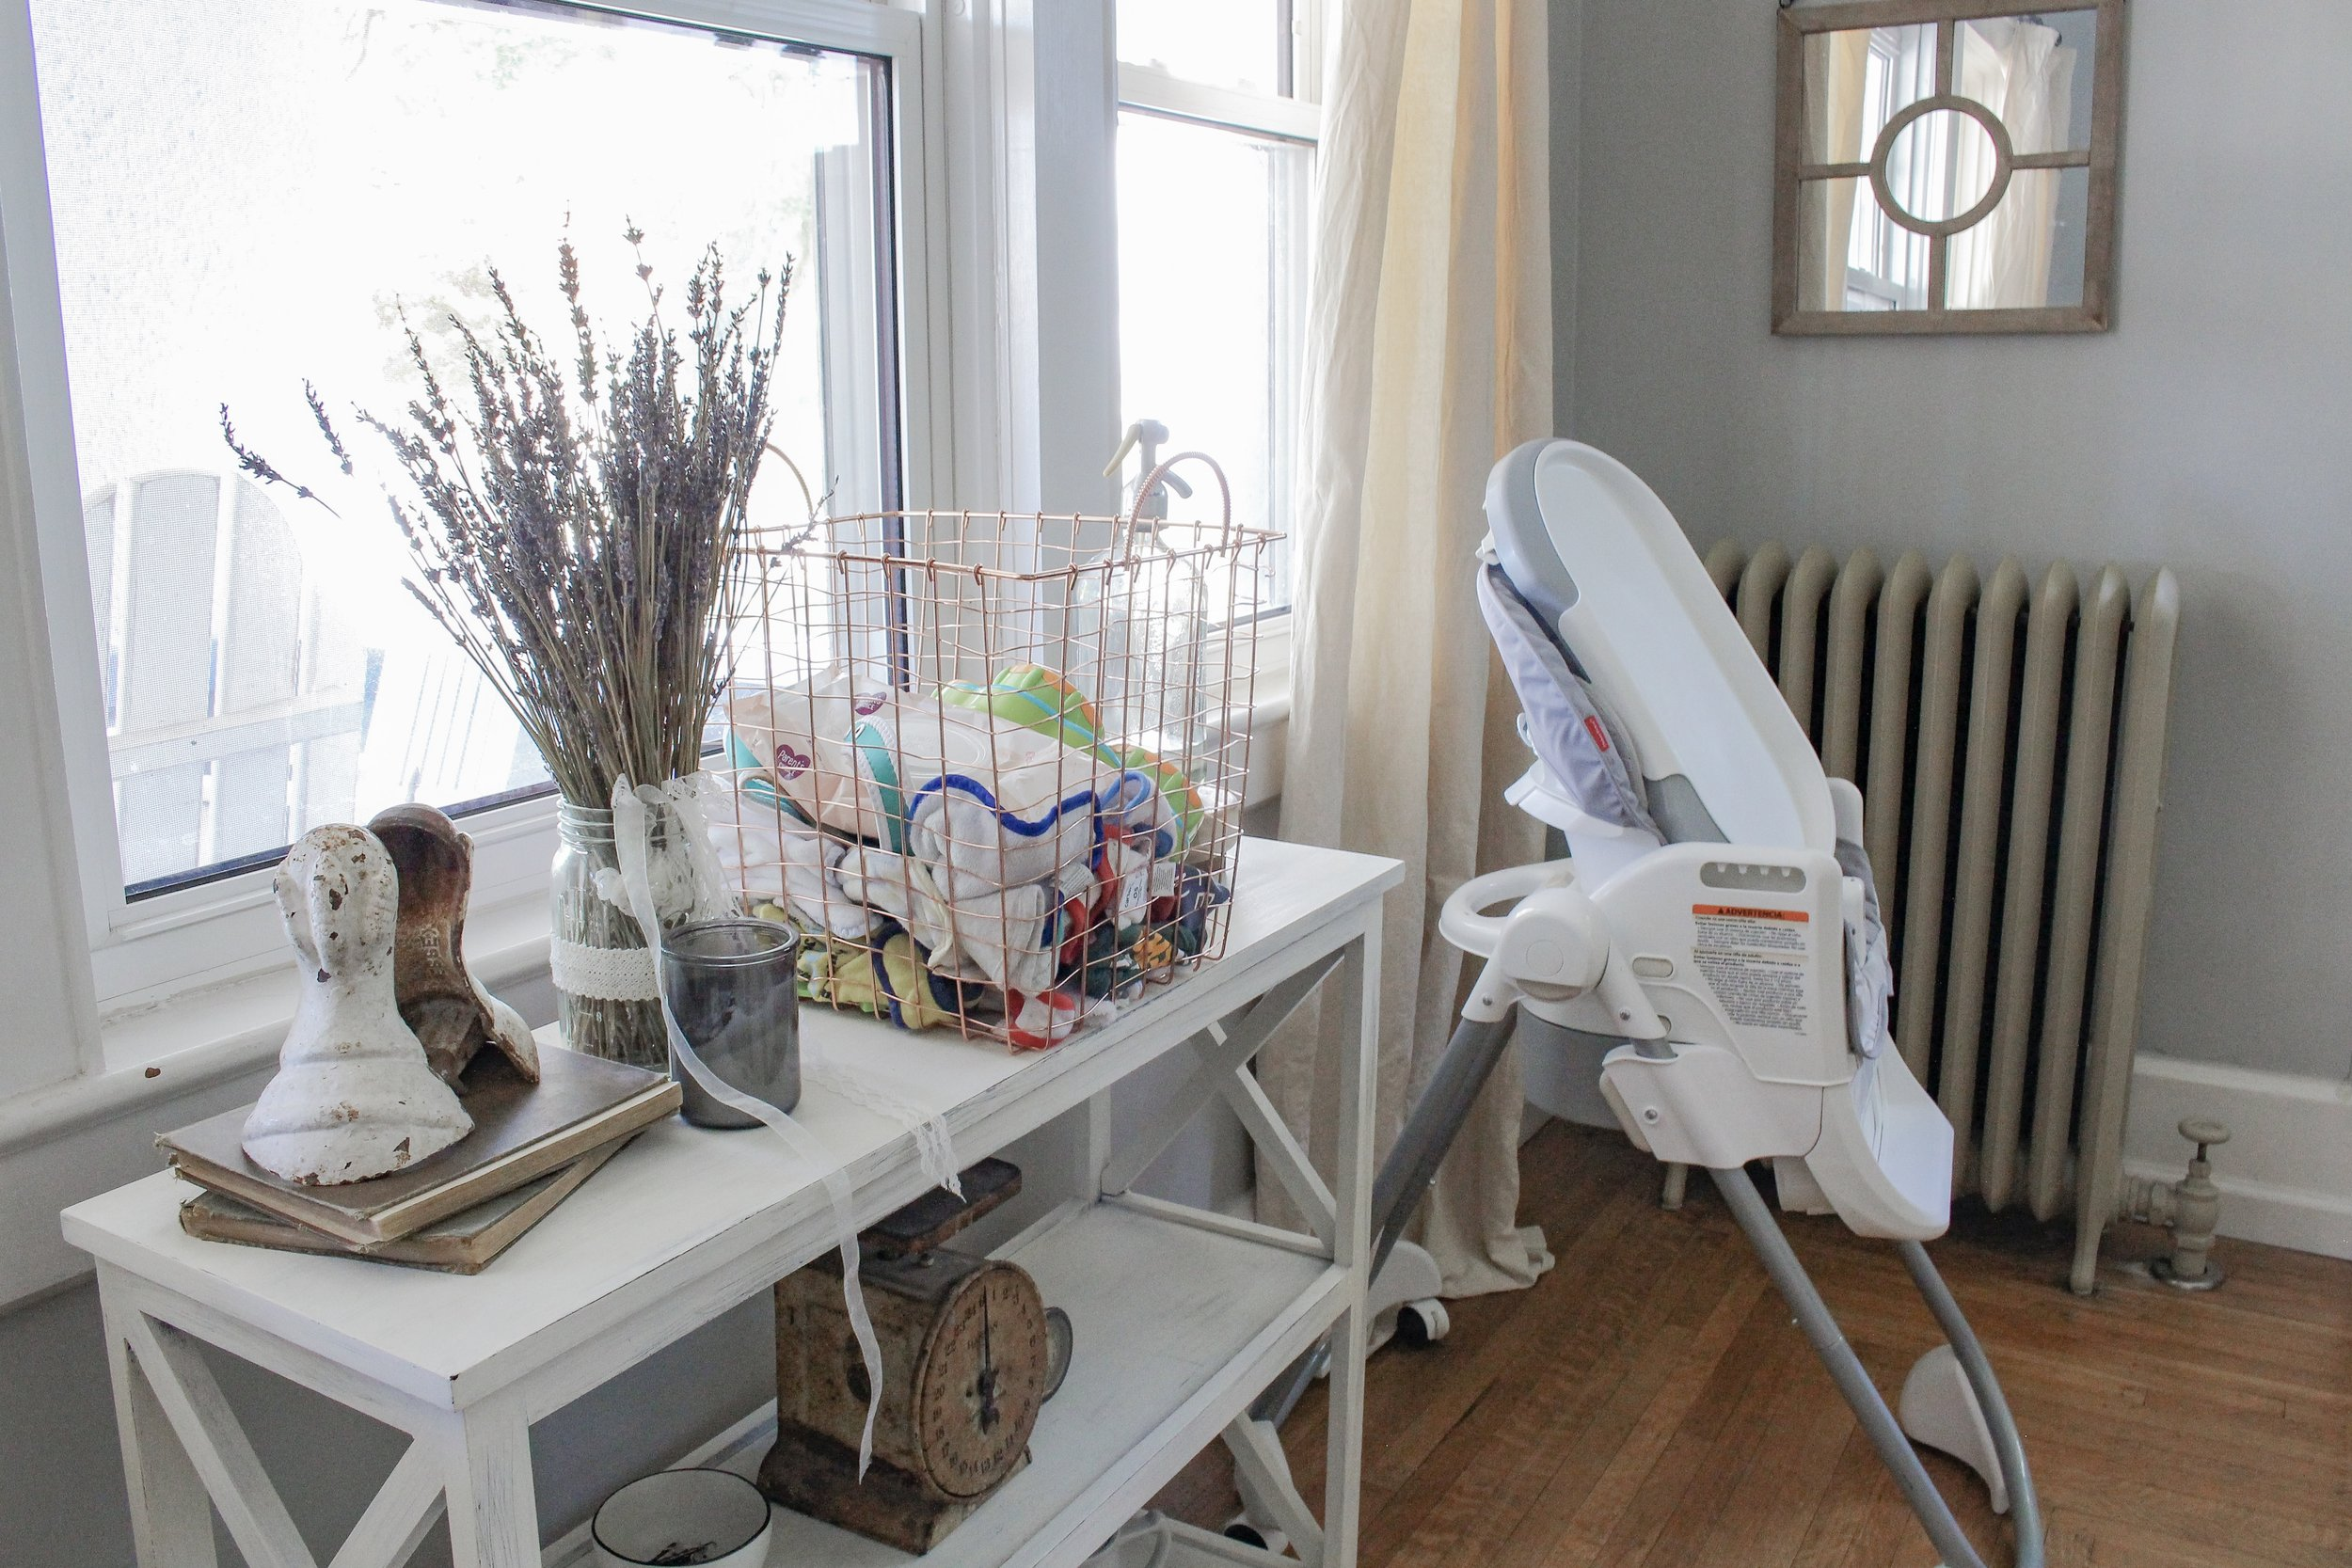 High chair and toys organized